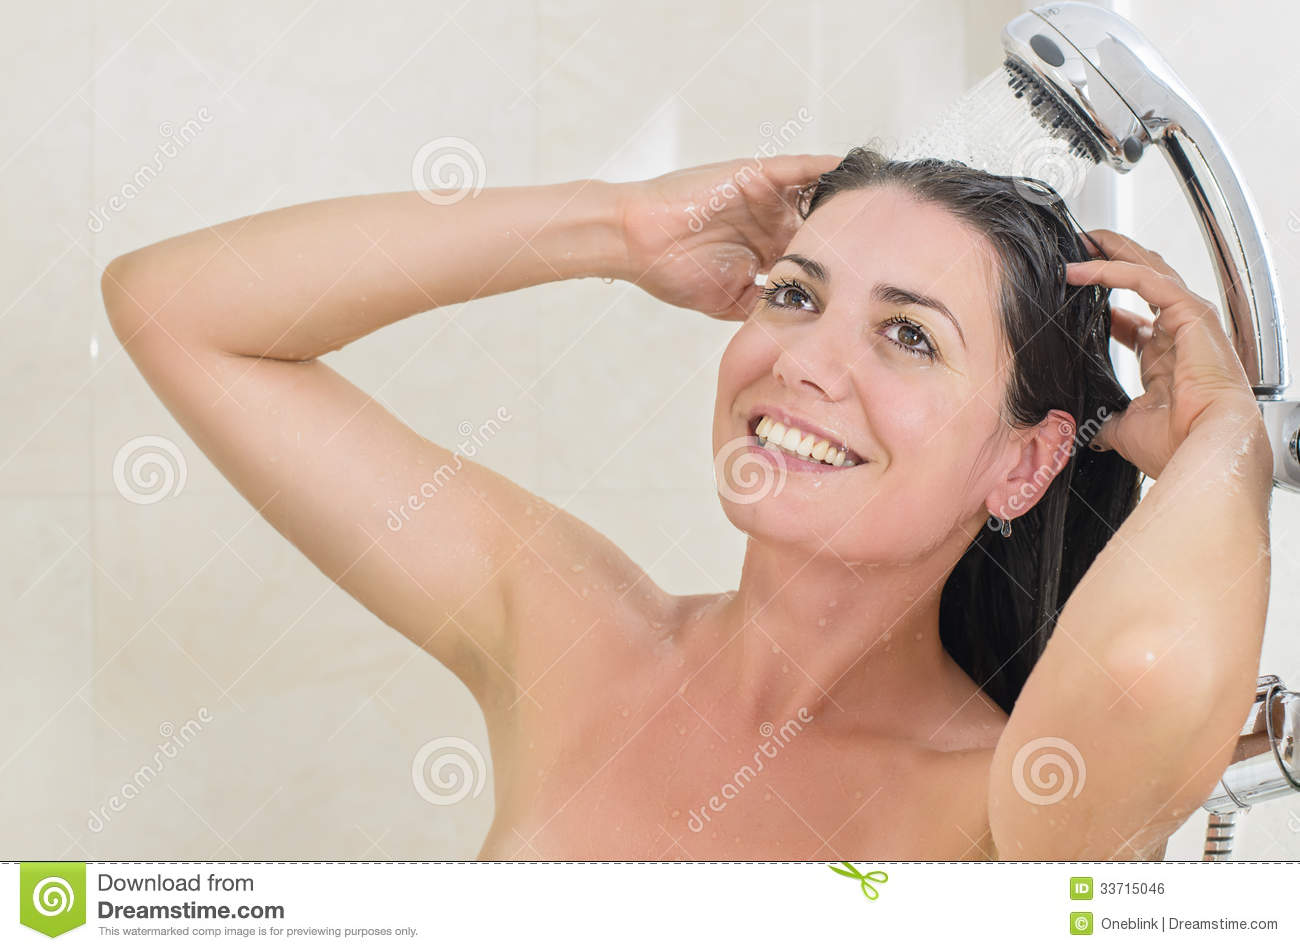 Woman Taking A Shower Royalty Free Stock Image